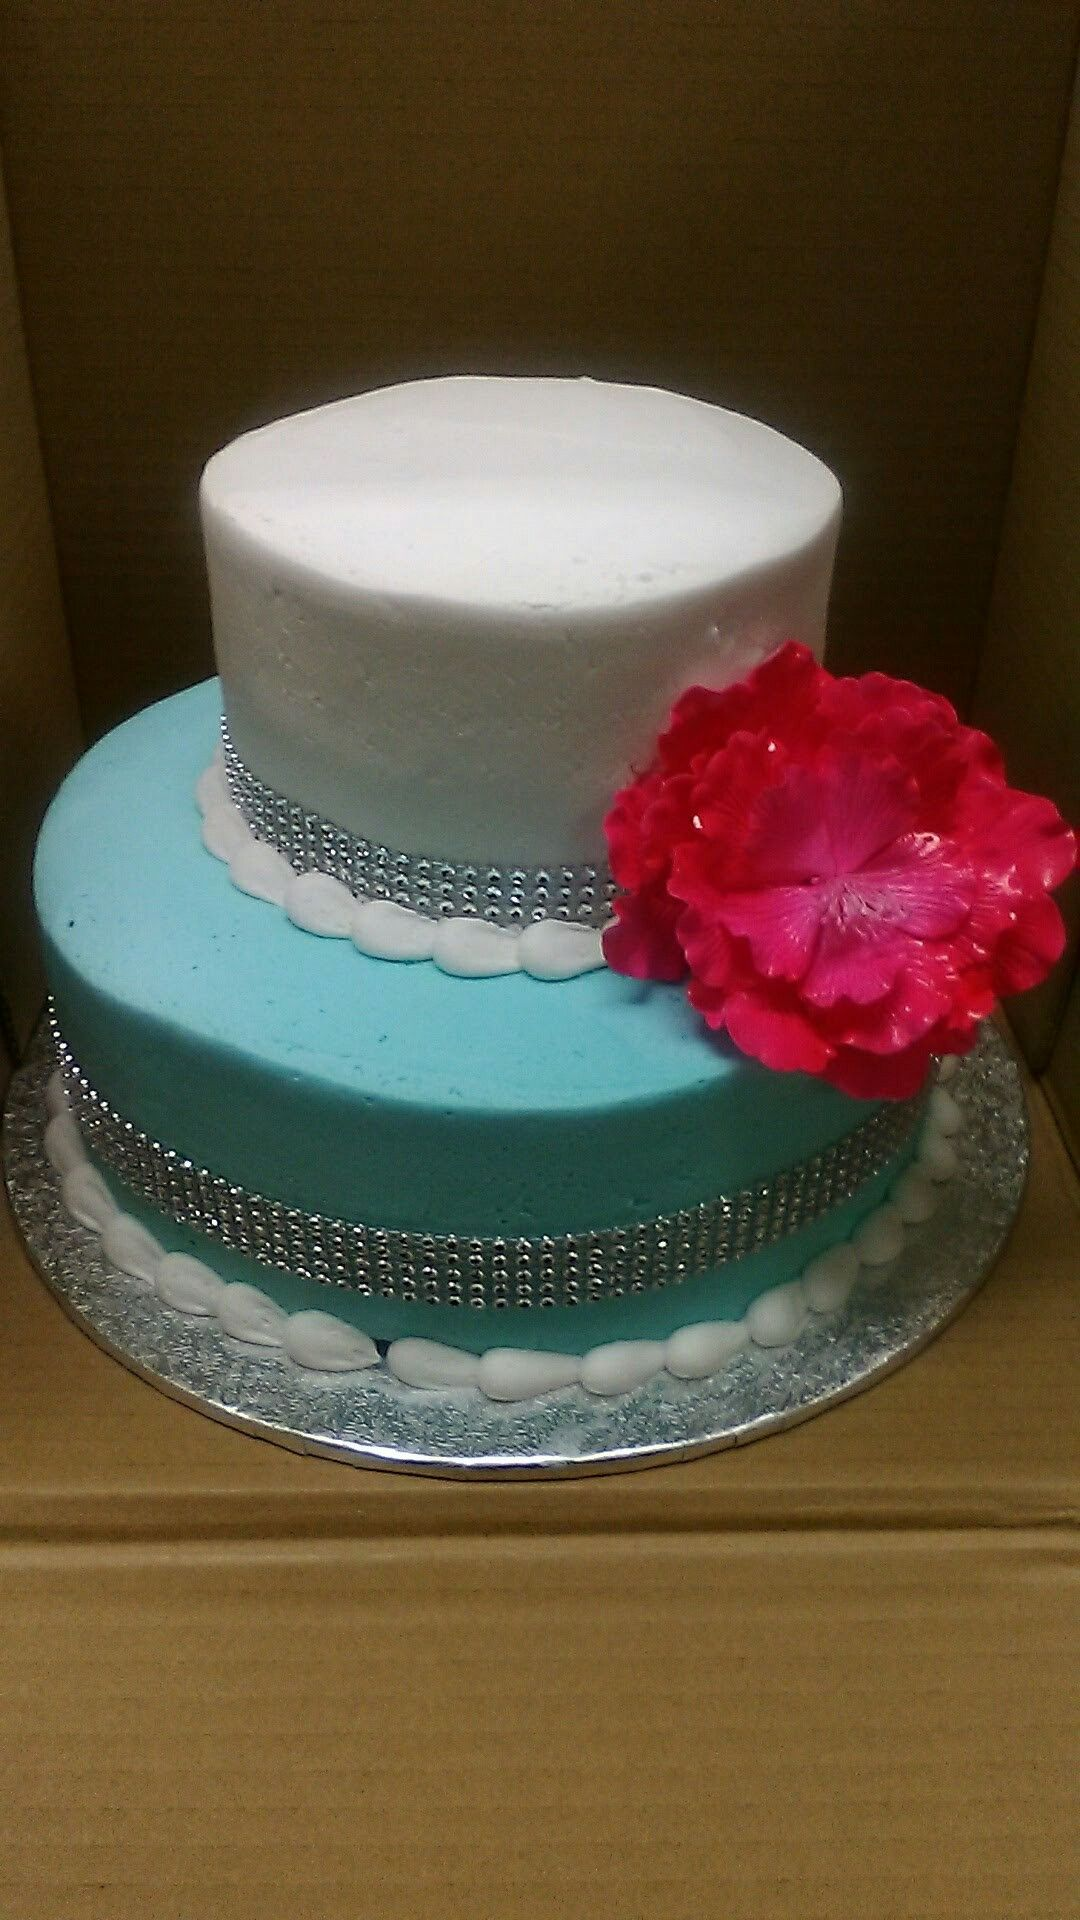 2 Tier Wedding Cake Walmart : wedding, walmart, Walmart, Cakes, Buttercream, Icing, Light, White, Rhinestones, Glamorous, Bling, Cakes,, Tiered